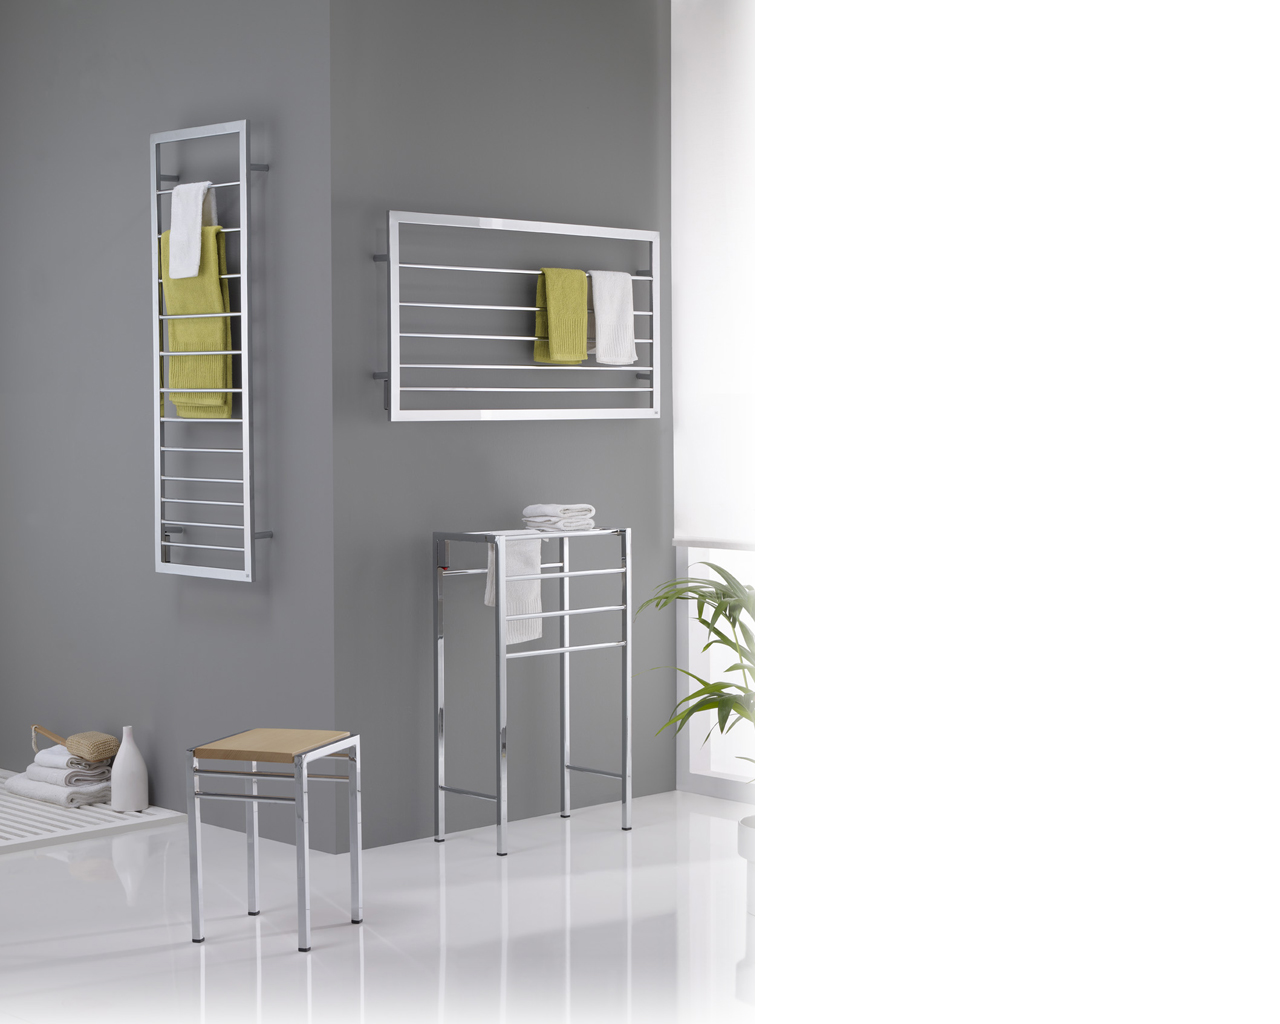 OXIL S.L. | Electric Towel Rails Marc